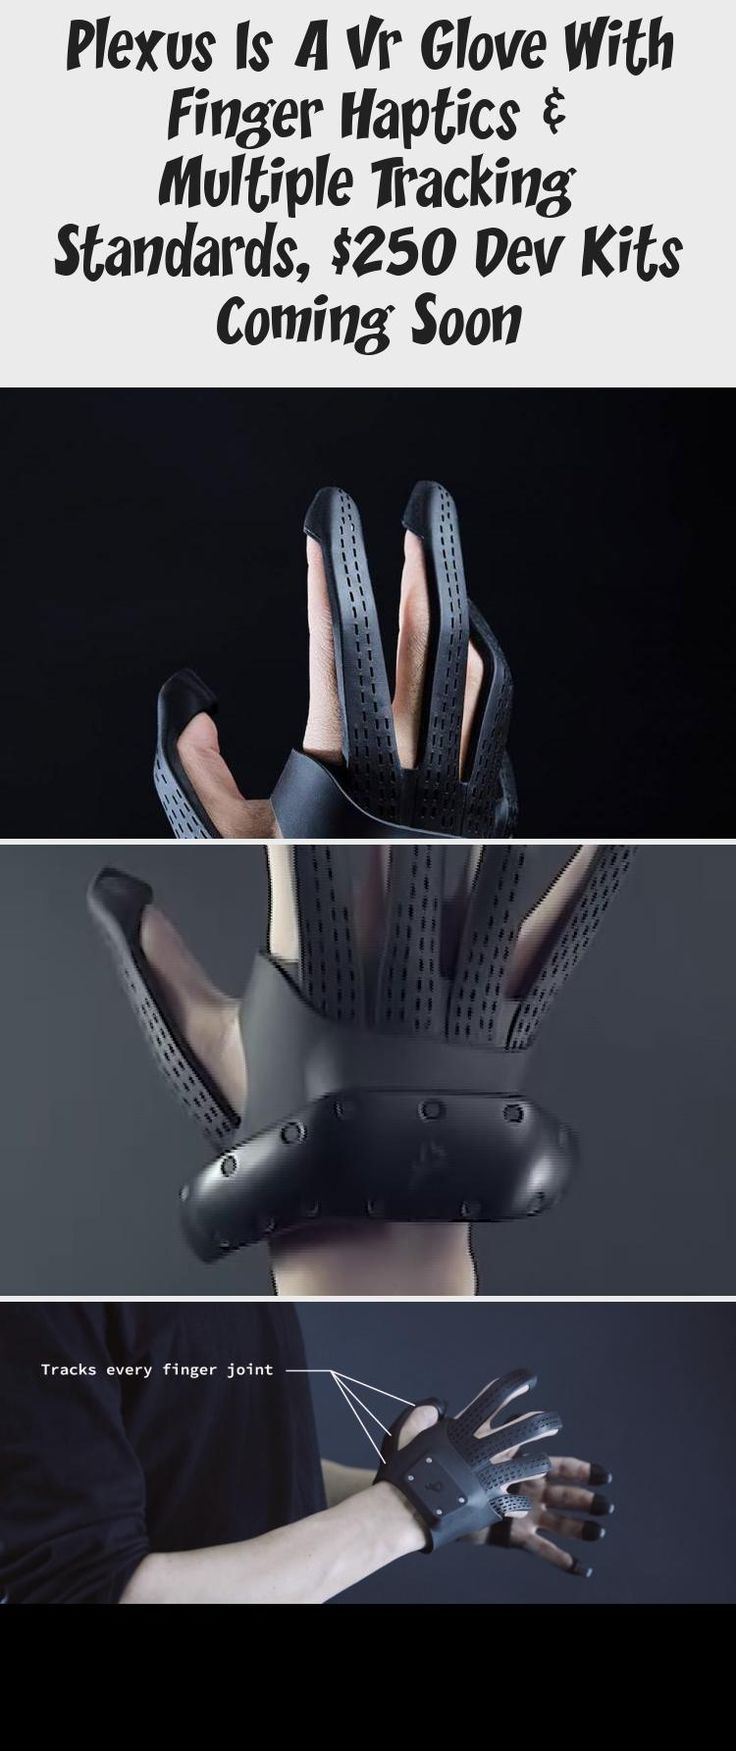 Plexus Is A Vr Glove With Finger Haptics & Multiple Tracking Standards, $250 Dev Kits Coming Soon in 2020 (With images) | Tracking standards ...